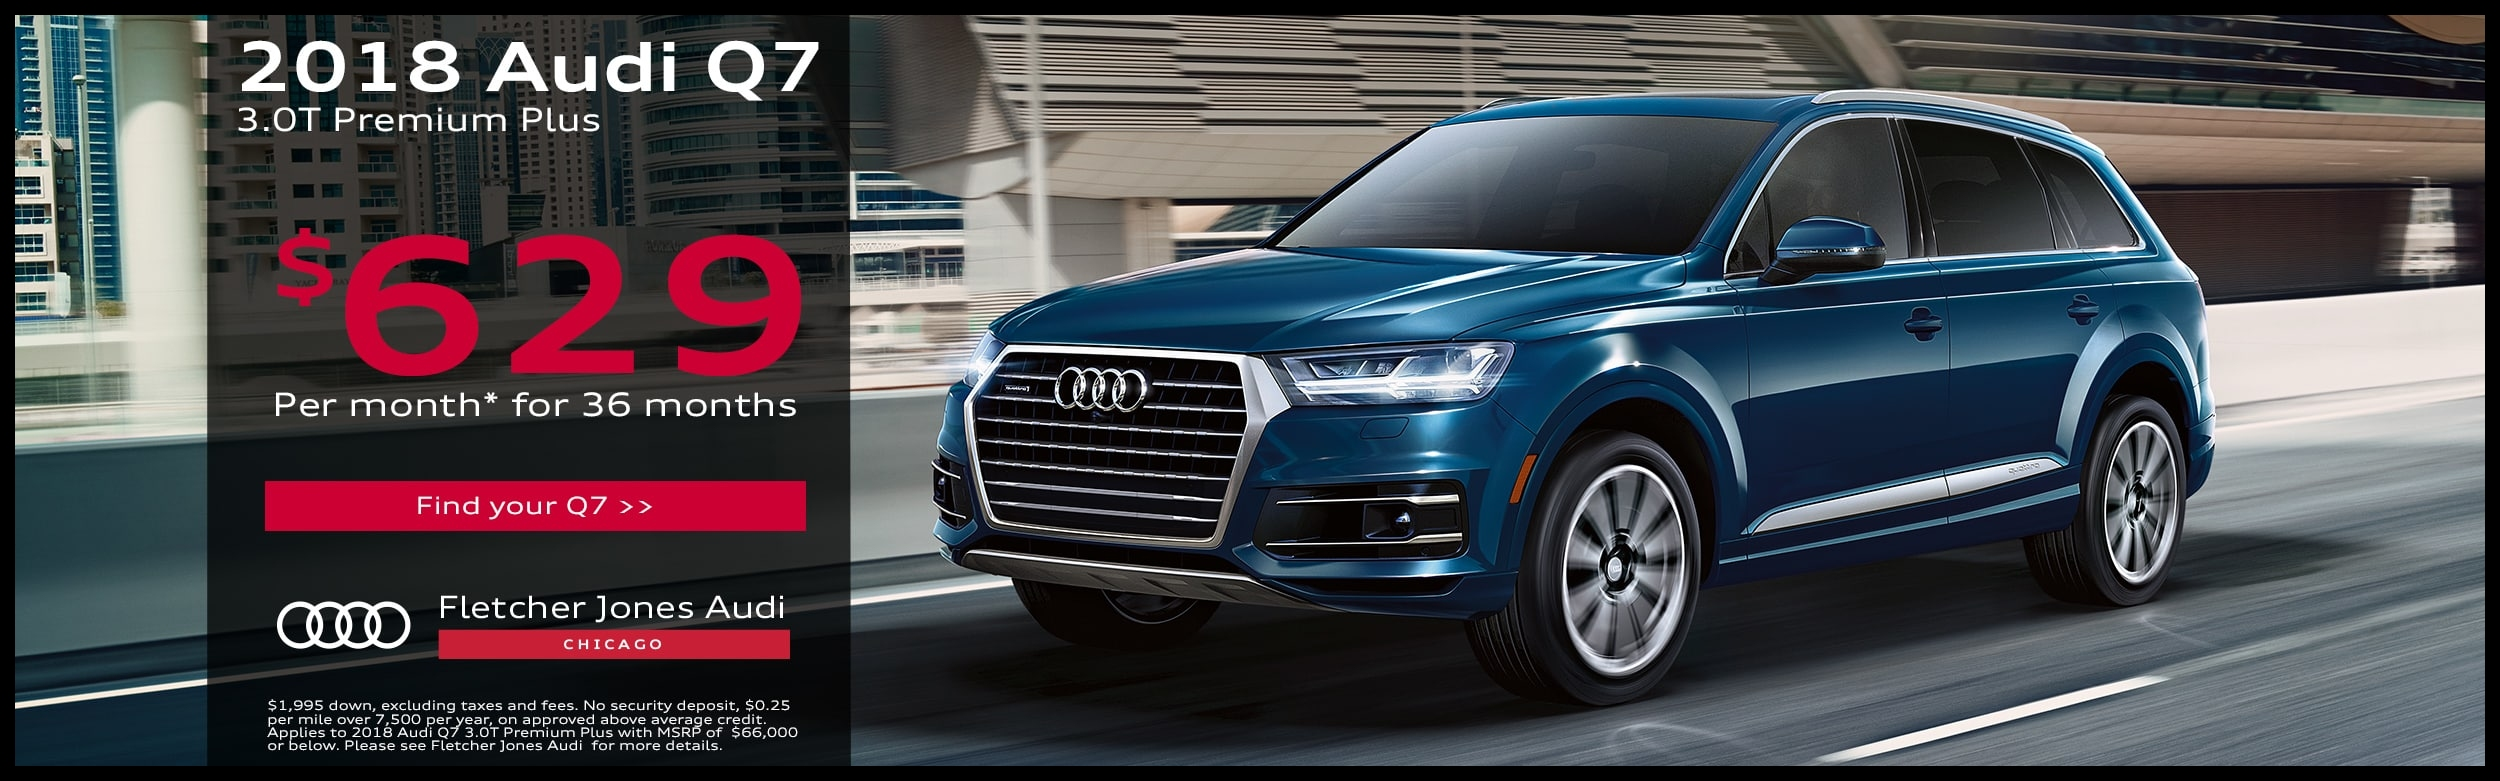 2018 Audi Q7 SUV Special fers in Chicago